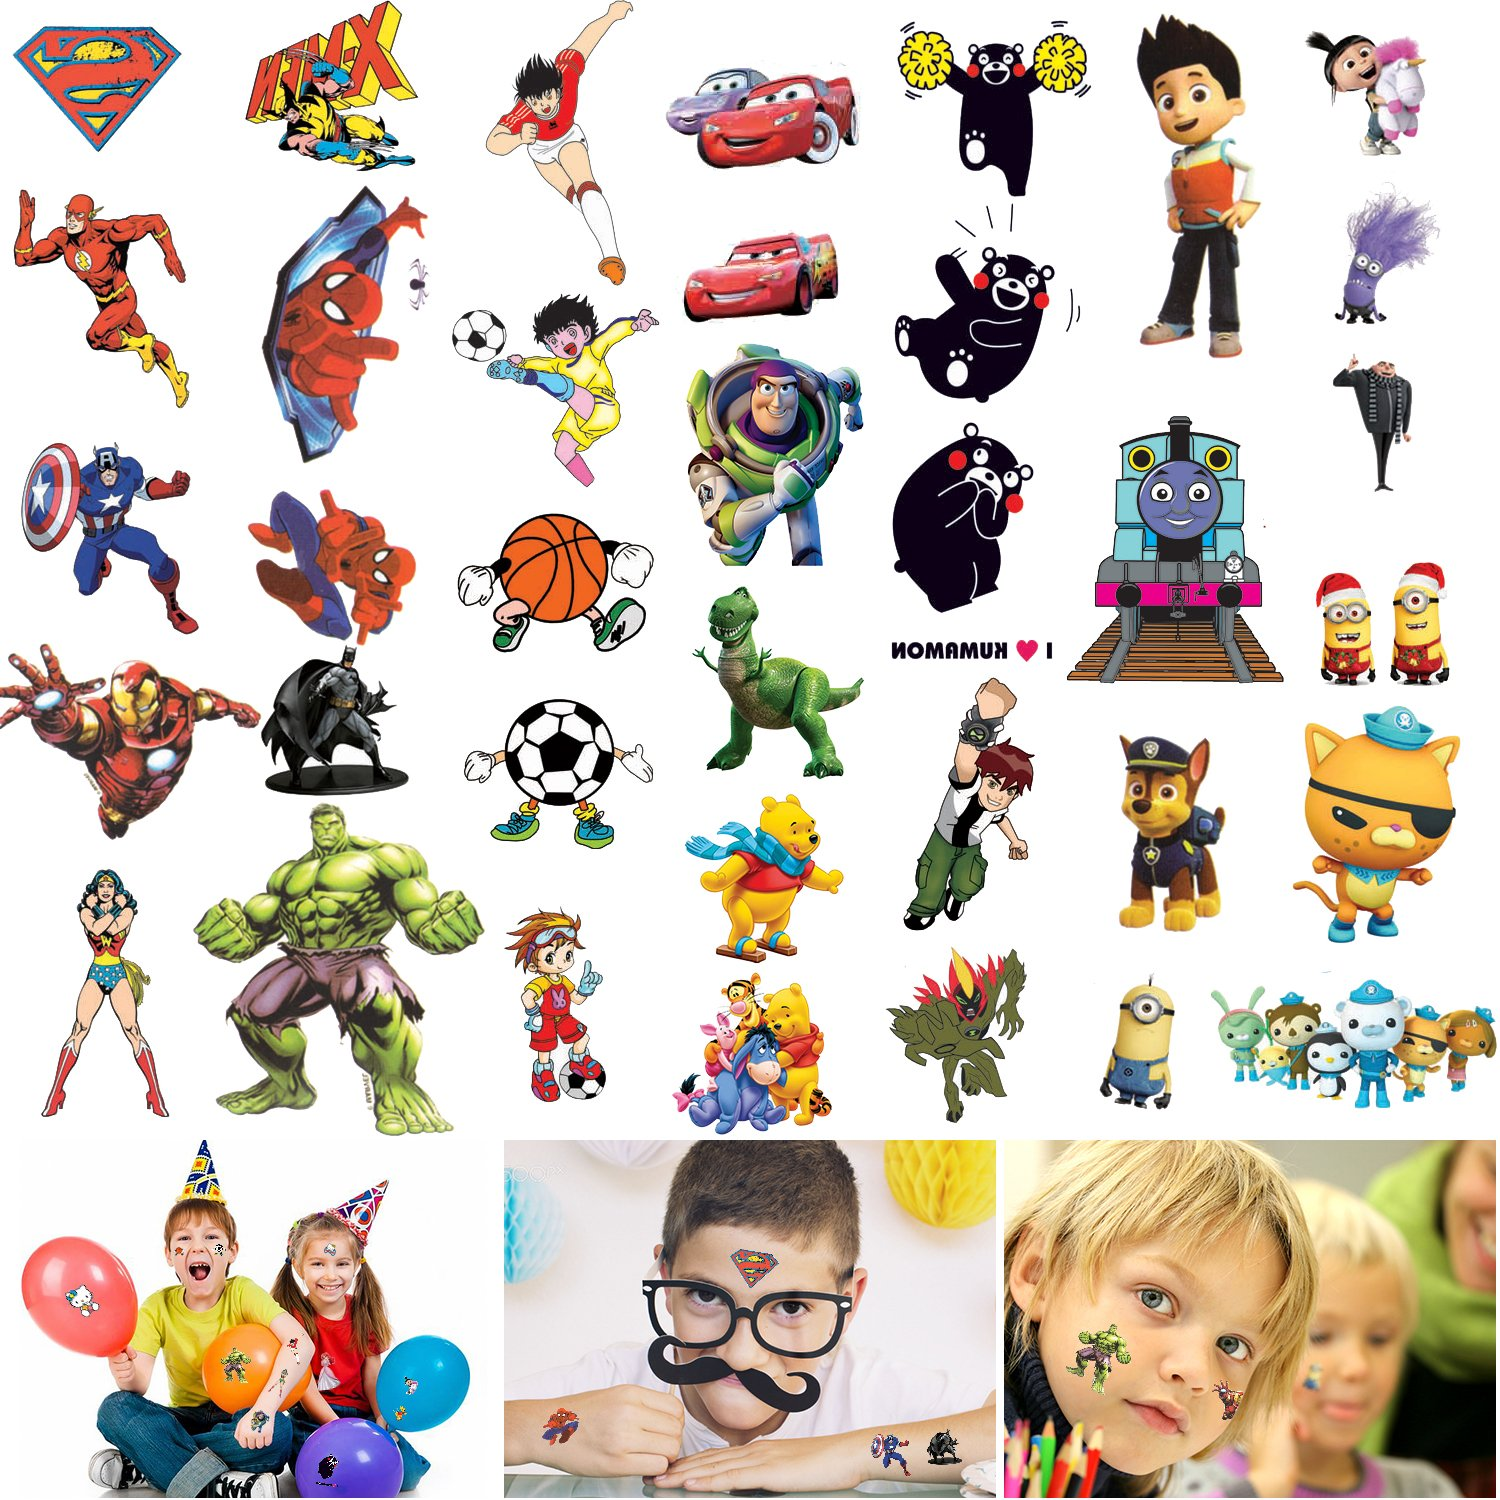 Temporary Tattoos for Kids Boys - 300 Tattoos on 18 Sheets, Super Hero Spiderman Batman Cars Thomas etc,Best for Party Favors Birthday Party Supplies School Fun Gifts